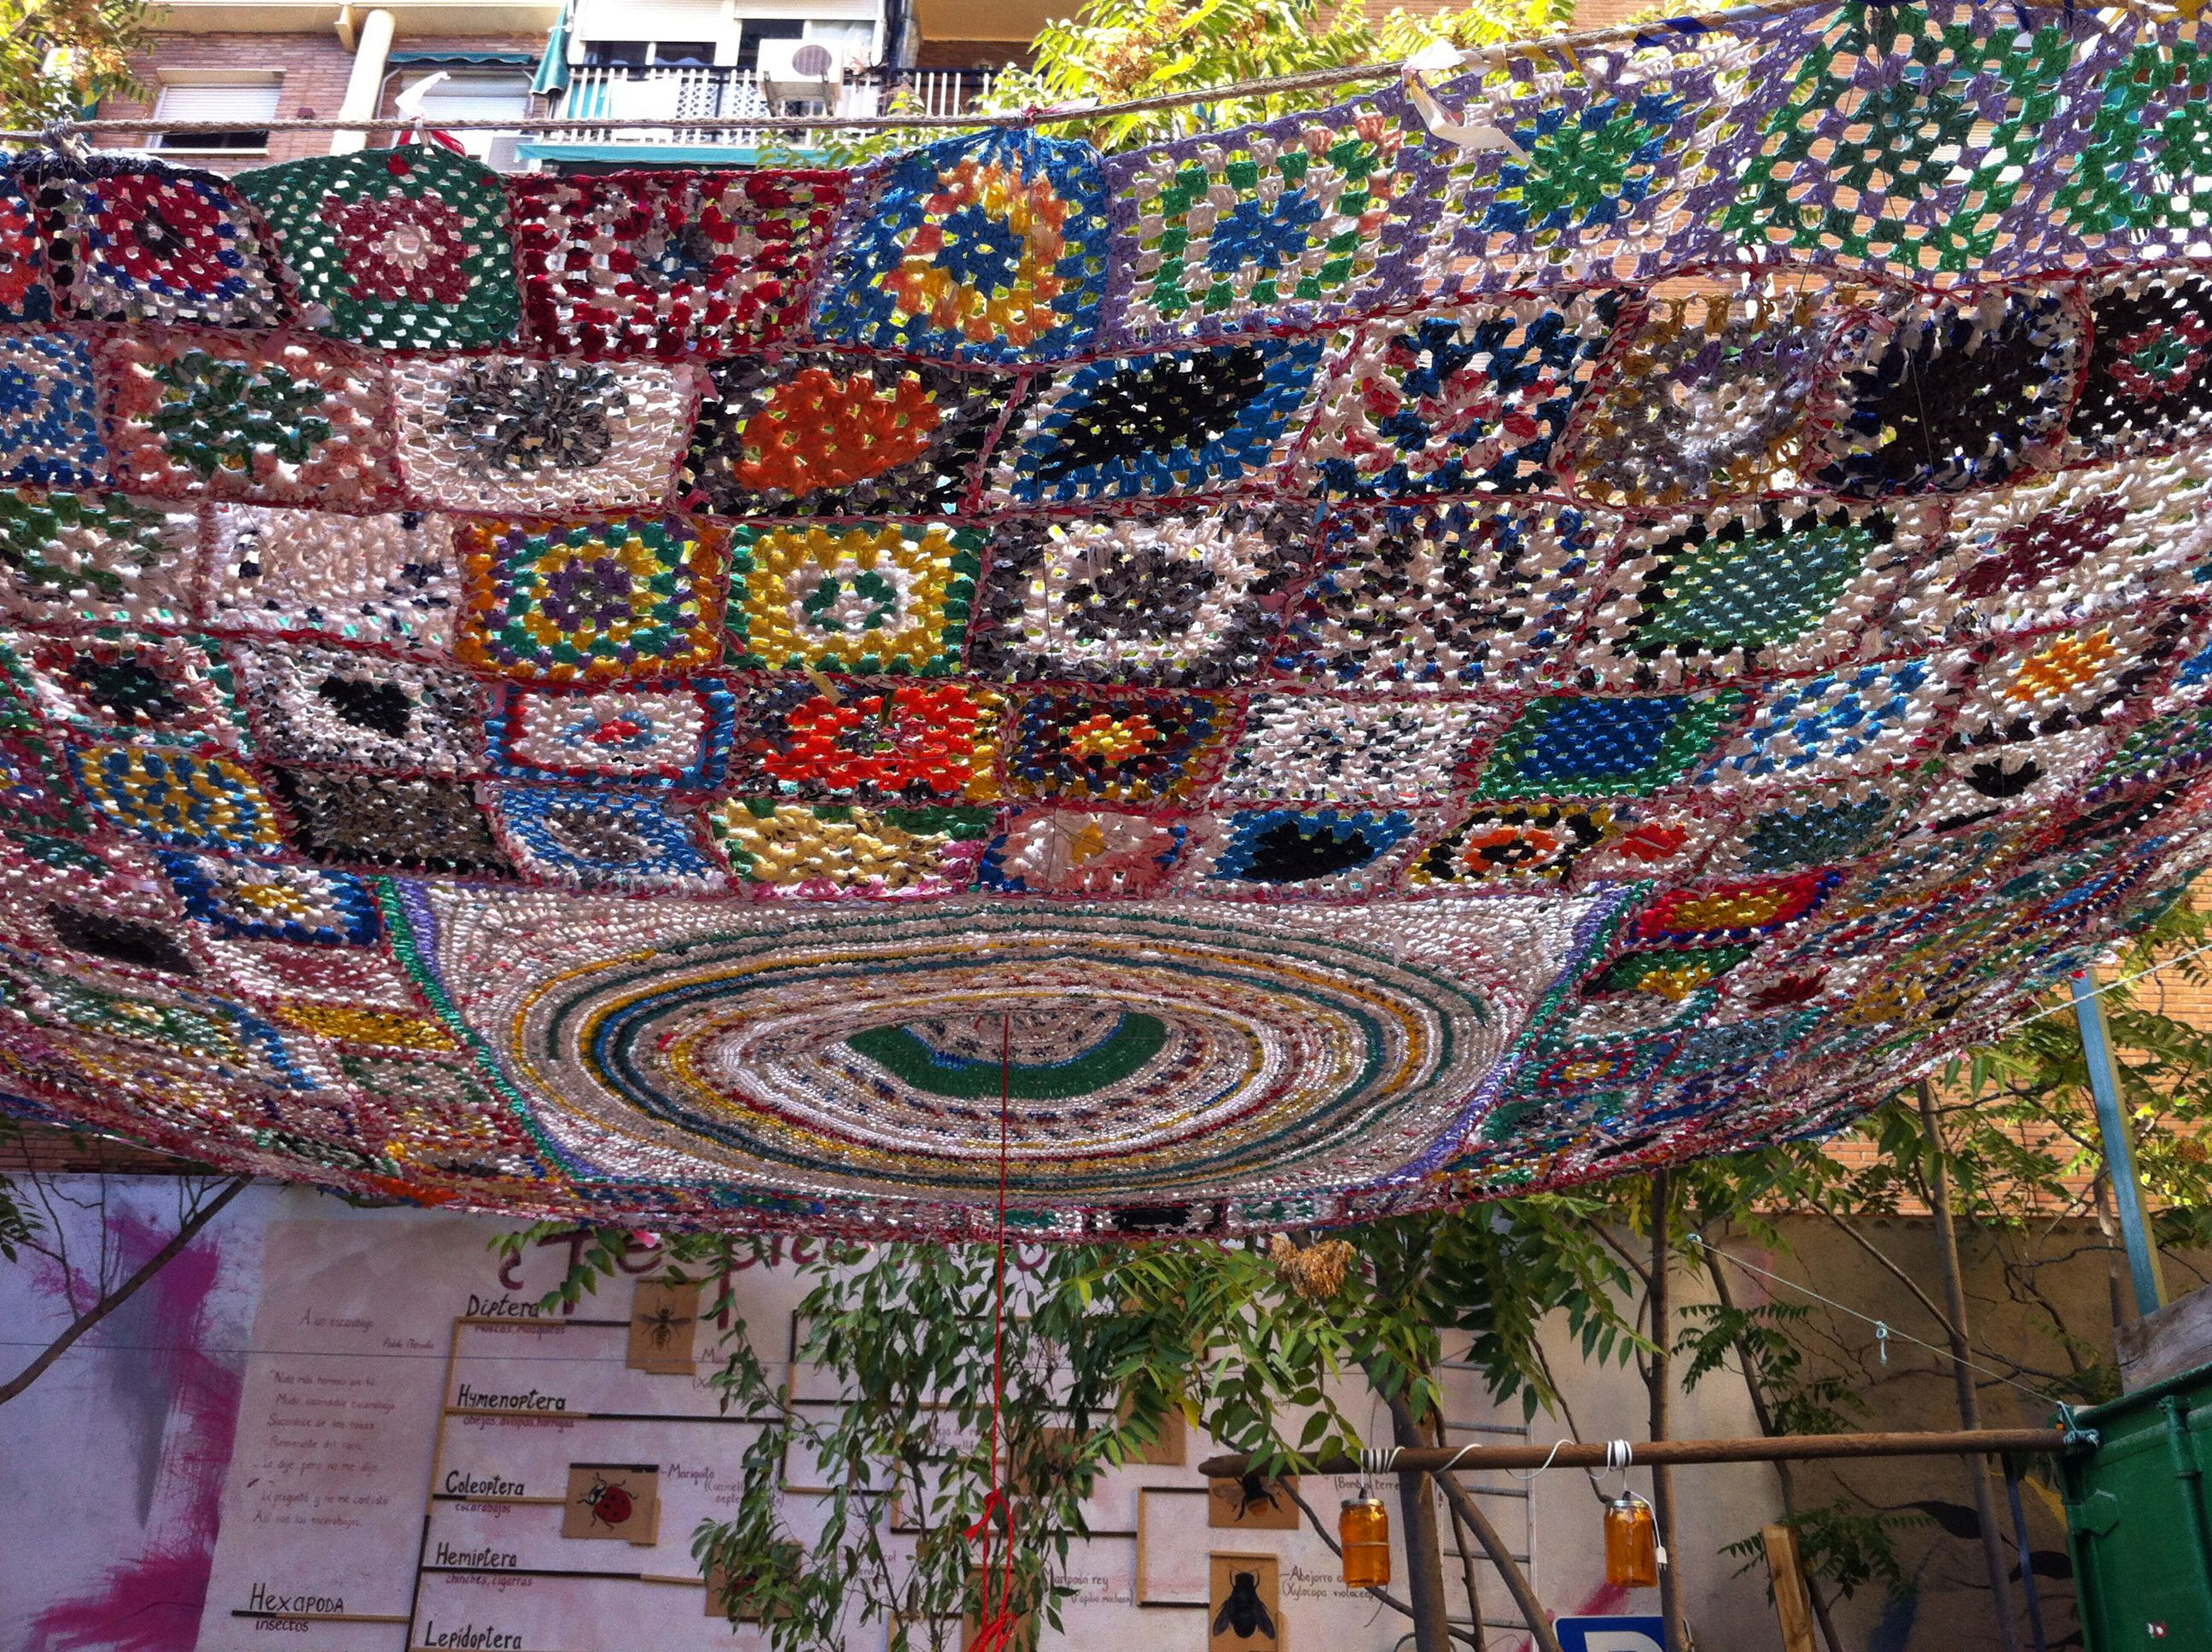 Crochet recycled plastic bags - Recycled Plastic Bags For A Crocheted Sunshade Esto Es Una Plaza Madrid Spain